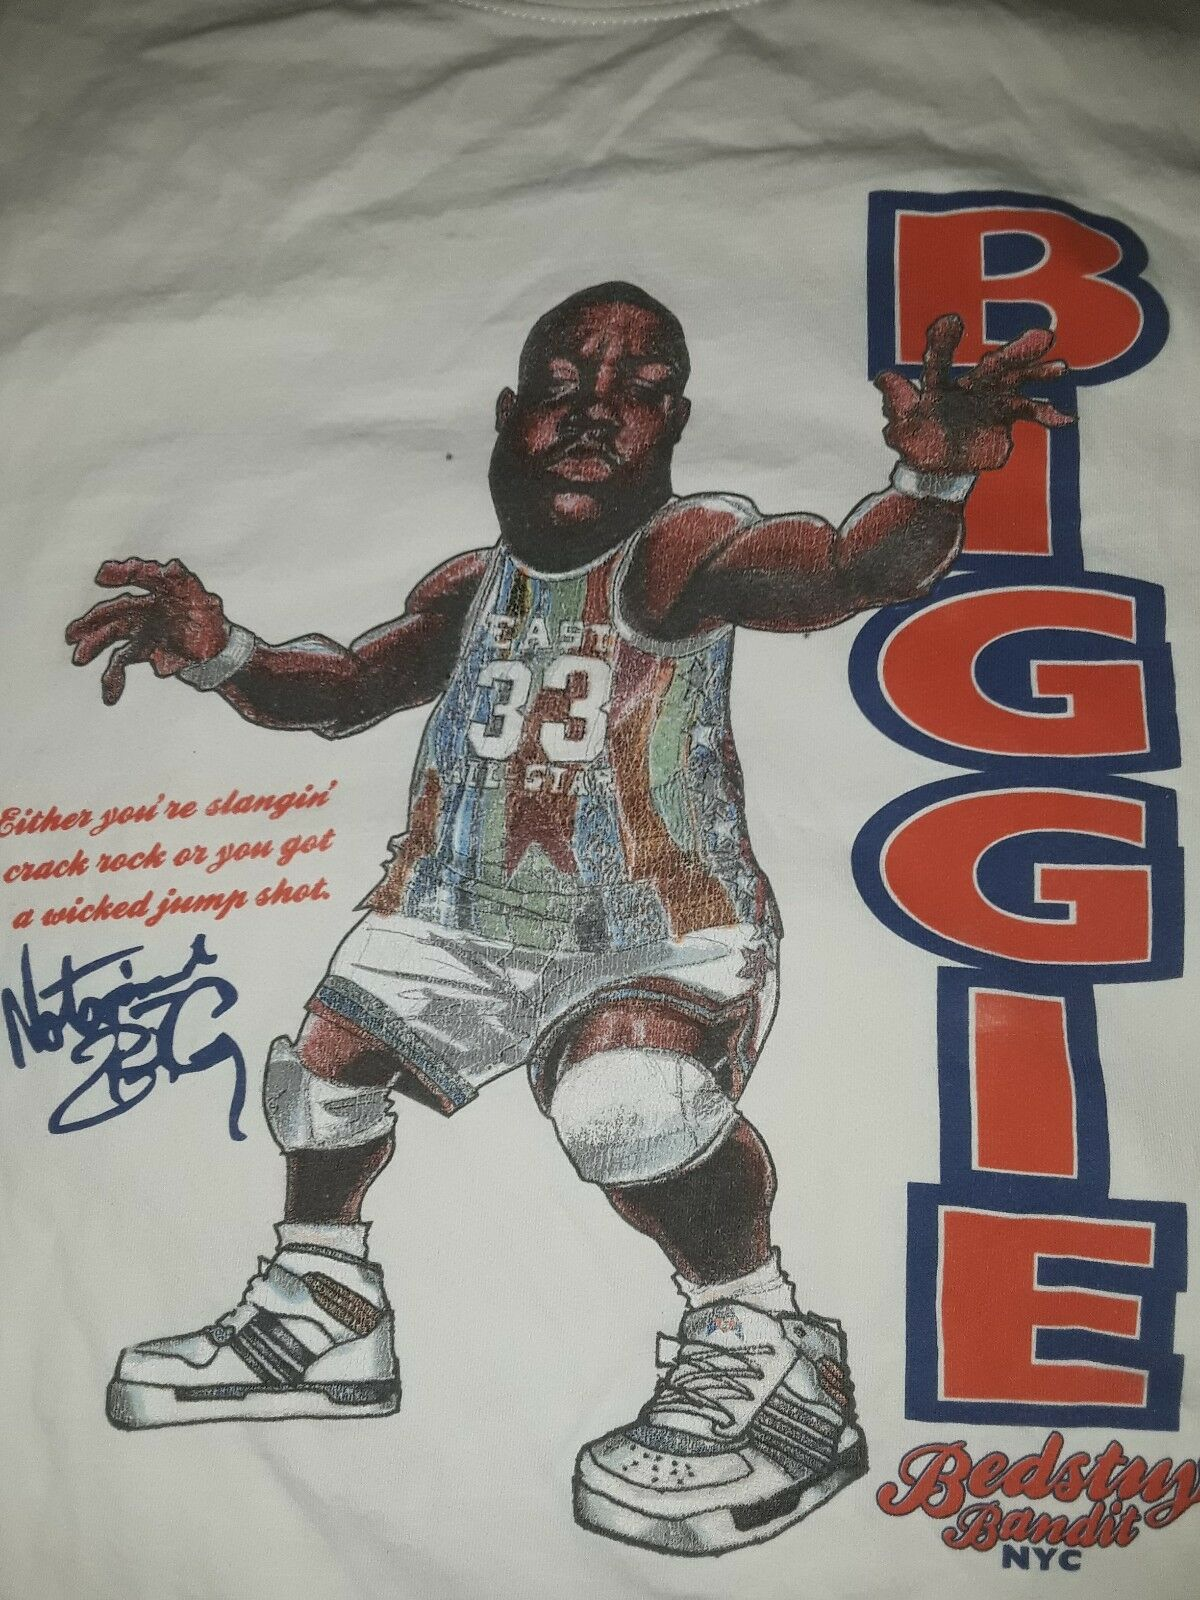 Undrcrwn Notorious BIG (Biggie Smalls) T-Shirt